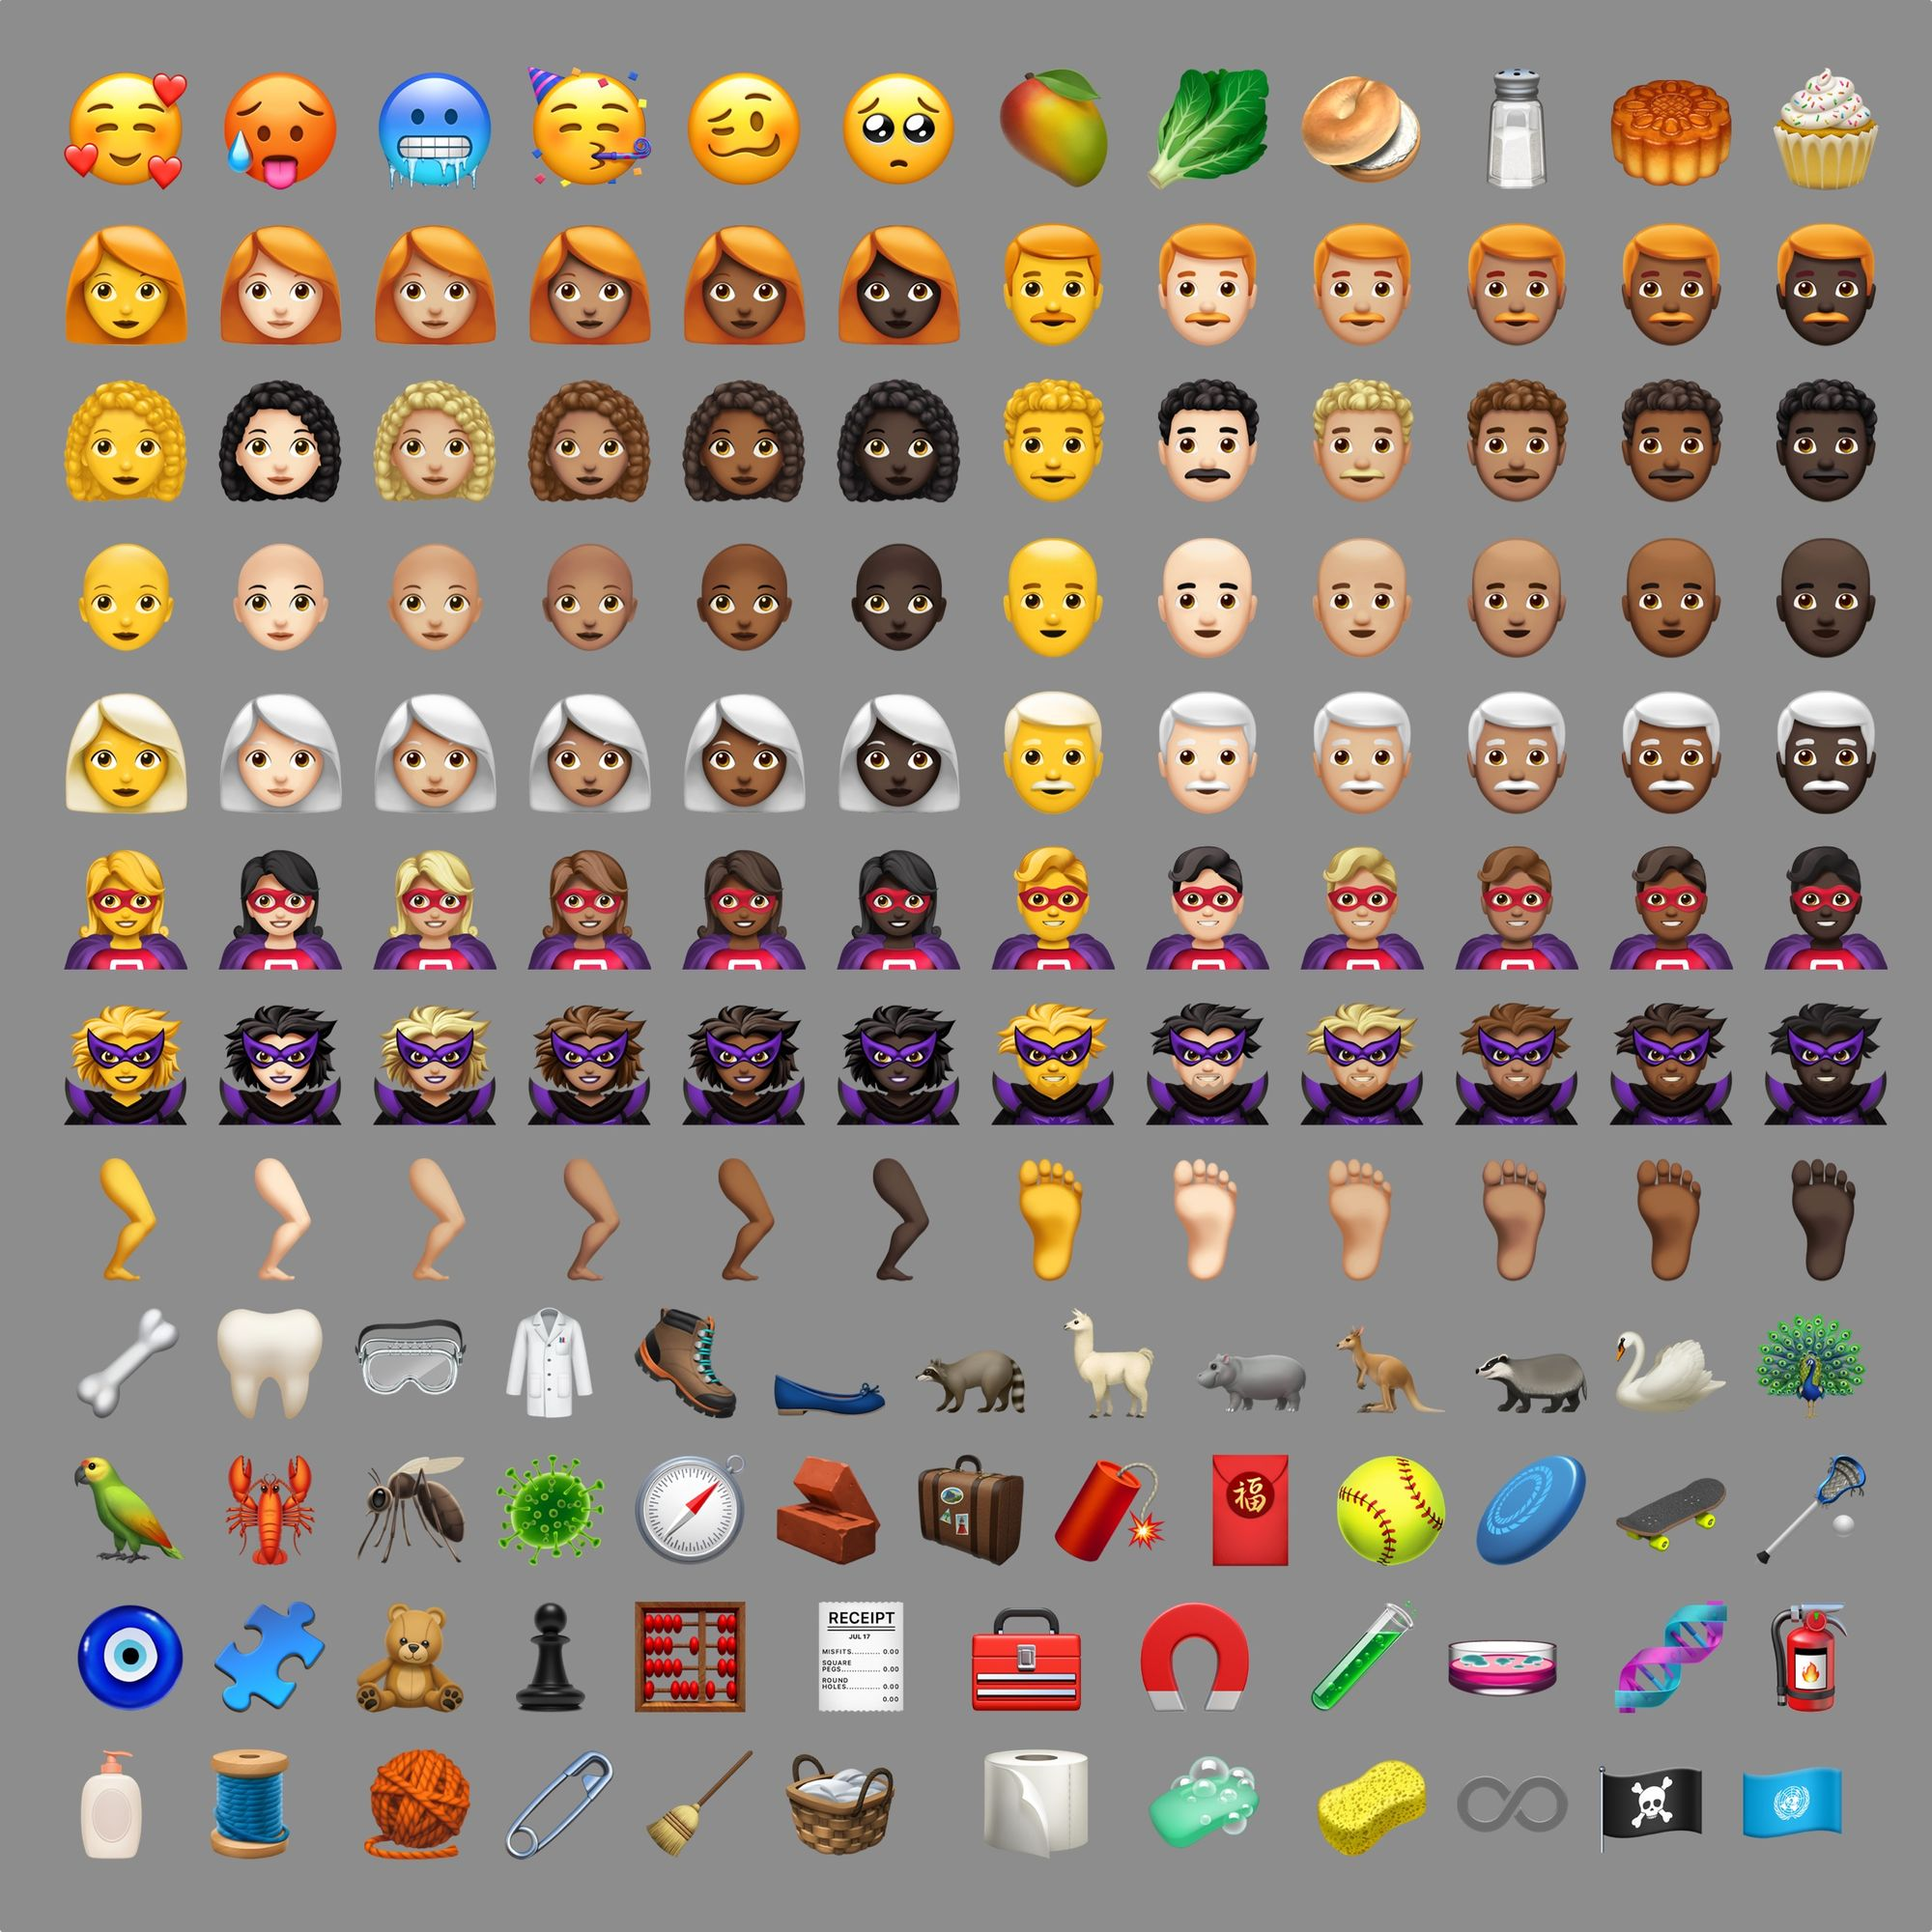 iOS 12 1 Emoji Changelog